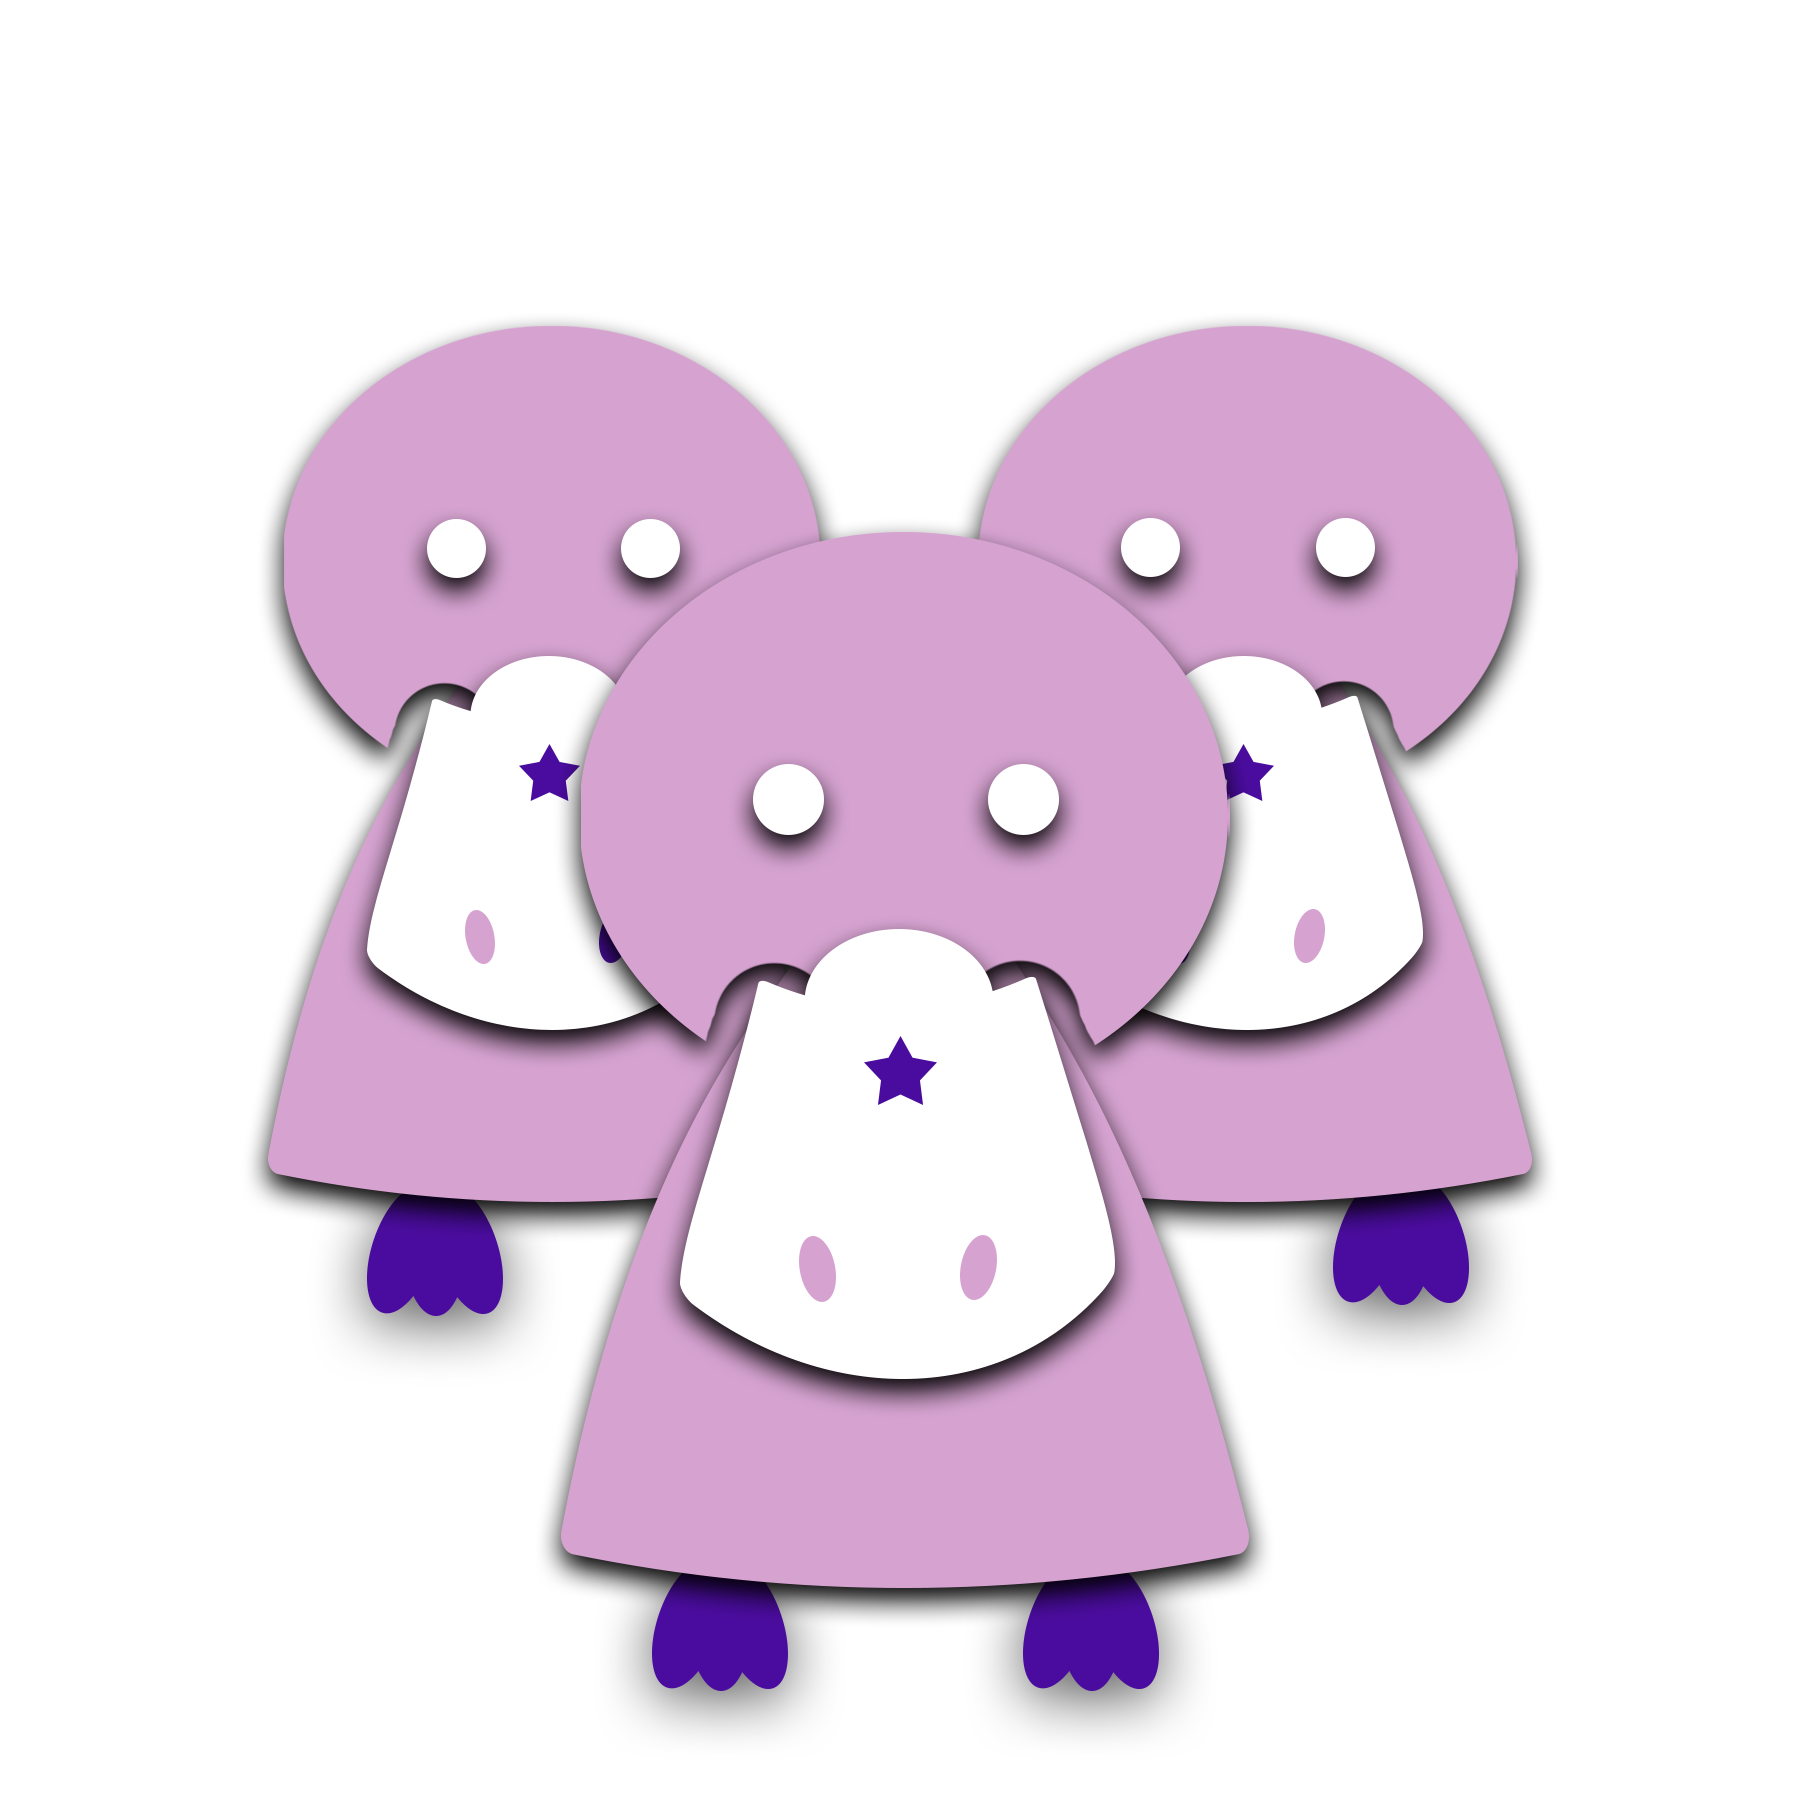 [Image] A group of light purple, animated platypus with dark purple feet standing in a group. Madeline Stein offers group counseling for gifted children and gifted teens in Denver, CO.